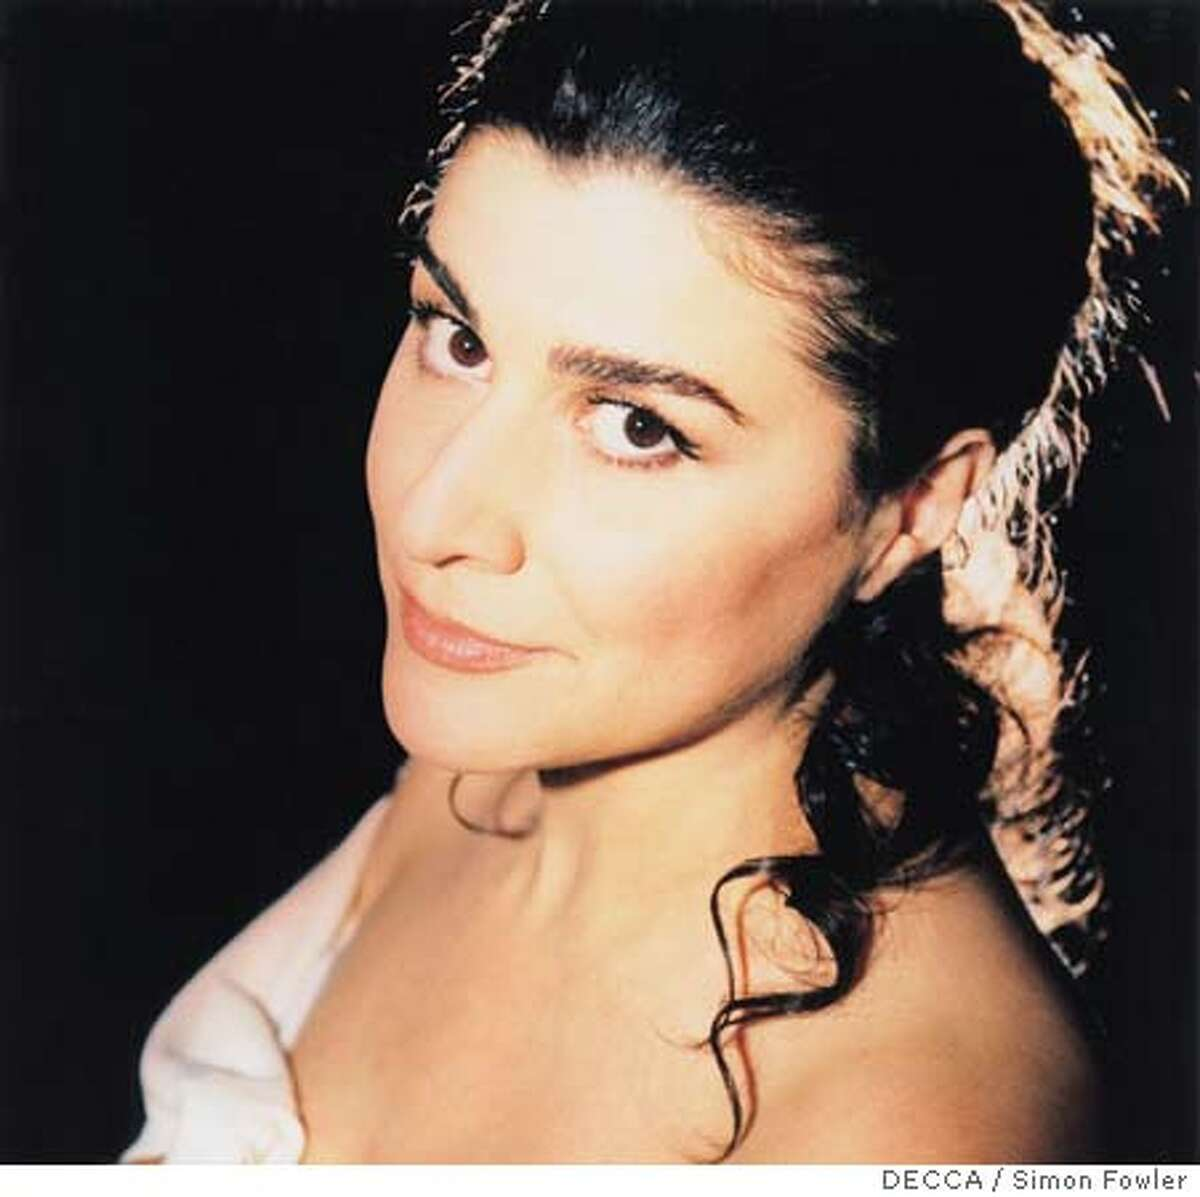 BARTOLI08 Since making her now-legendary 1991 West Coast recital debut at Cal Performances in Hertz Hall, Cecilia Bartoli has gone on to become one of the brightest stars in the opera firmament. The Grammy Award-winning mezzo-soprano returns to Cal Performances on October 6, 2005. Photo by: DECCA/Simon Fowler